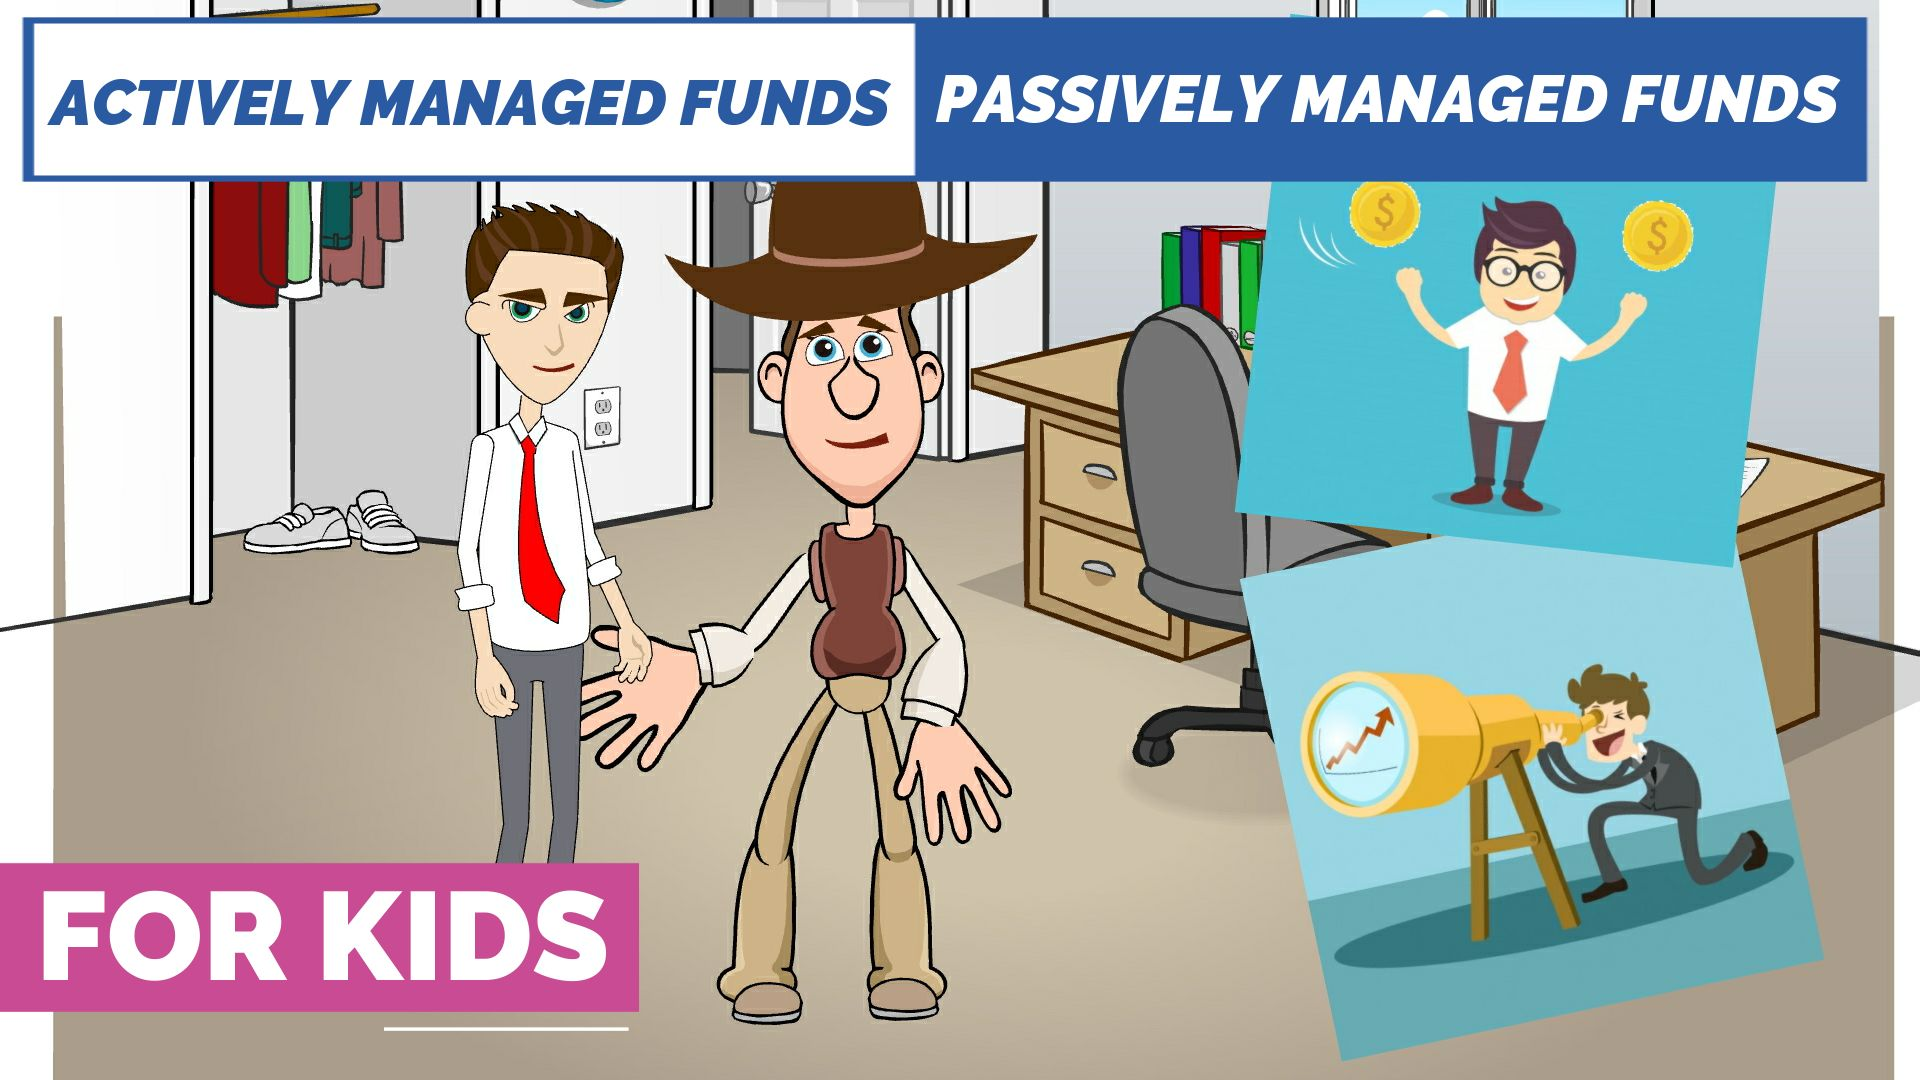 Actively Managed Funds vs Passively Managed Funds